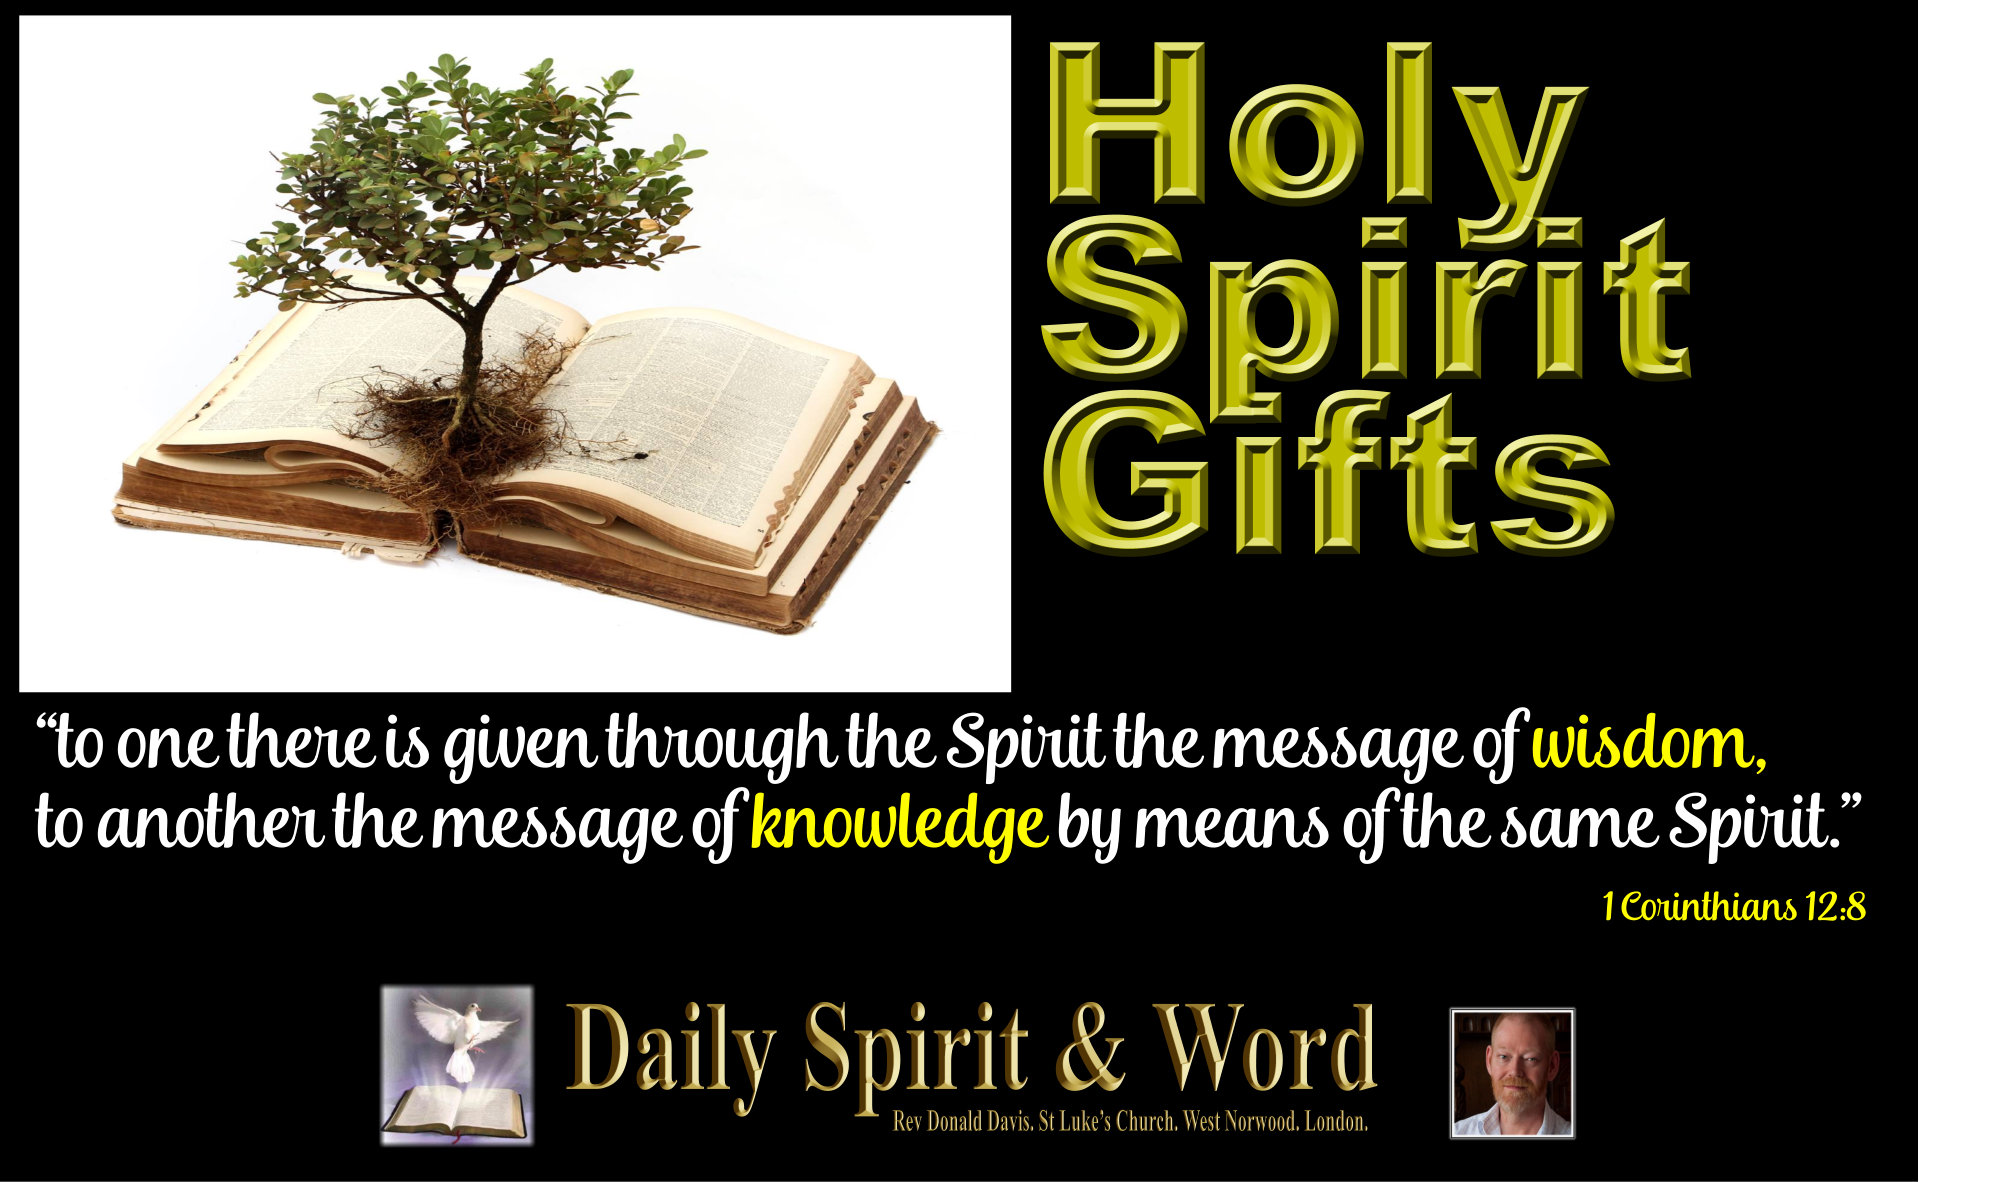 Getting the Gifts of the holy Spirit of God